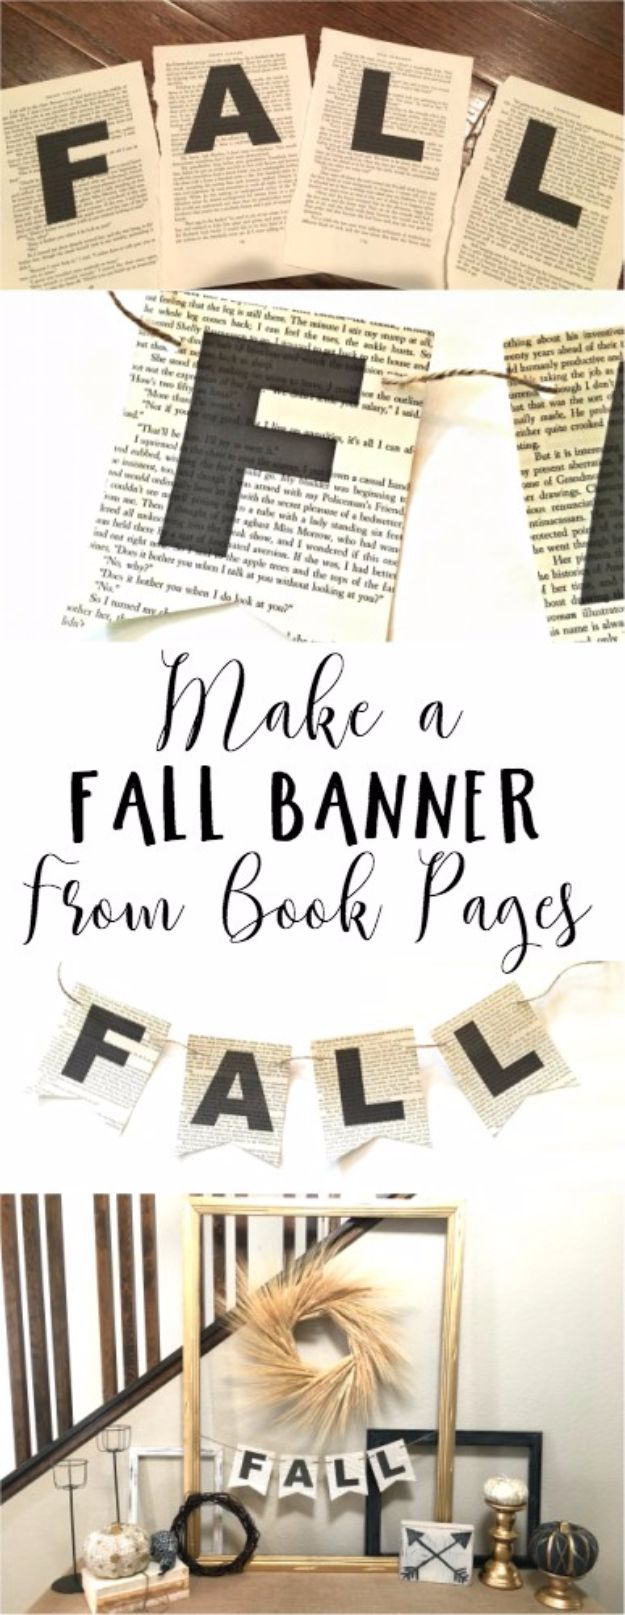 Best Crafts for Fall Decorating - Fall Banner made from Book Pages - DIY Home Decor, Mason Jar Ideas, Dollar Store Crafts, Rustic Pumpkin Ideas, Wreaths, Candles and Wall Art, Centerpieces, Wedding Decorations, Homemade Gifts, Craft Projects with Leaves, Flowers and Burlap, Painted Art, Candles and Luminaries for Cool Home Decor - Quick and Easy Projects With Step by Step Tutorials and Instructions